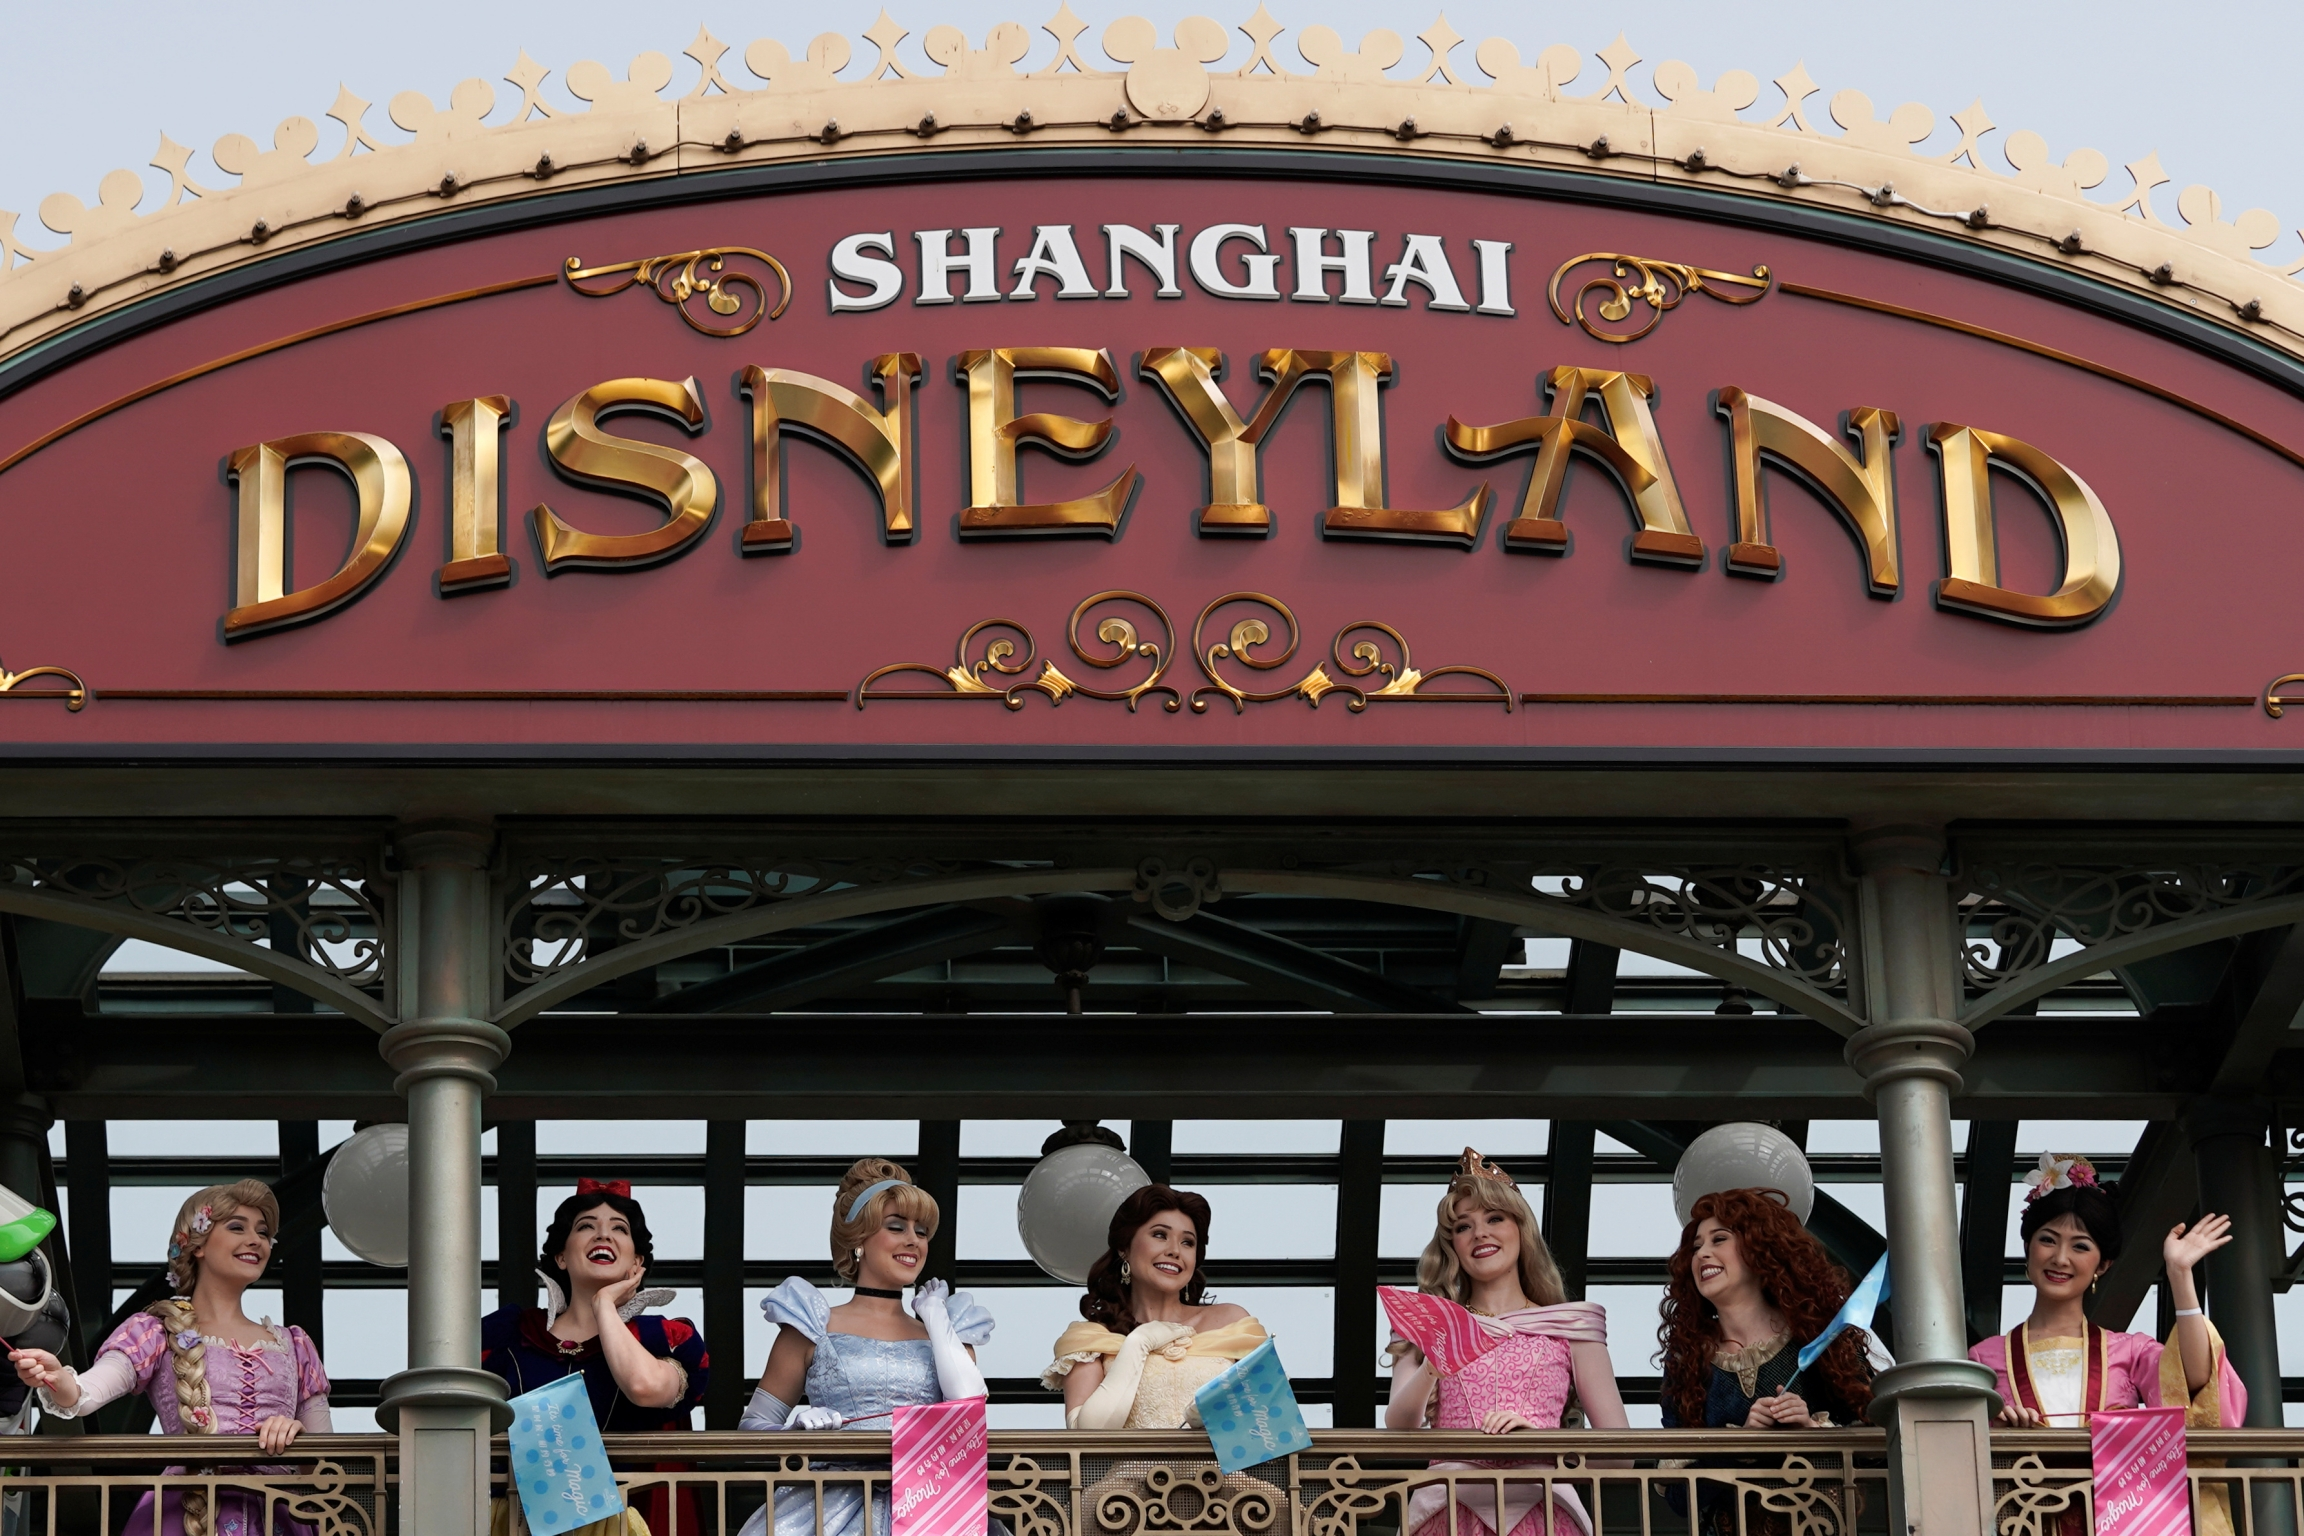 Disney characters appear on opening day at Shanghai Disneyland